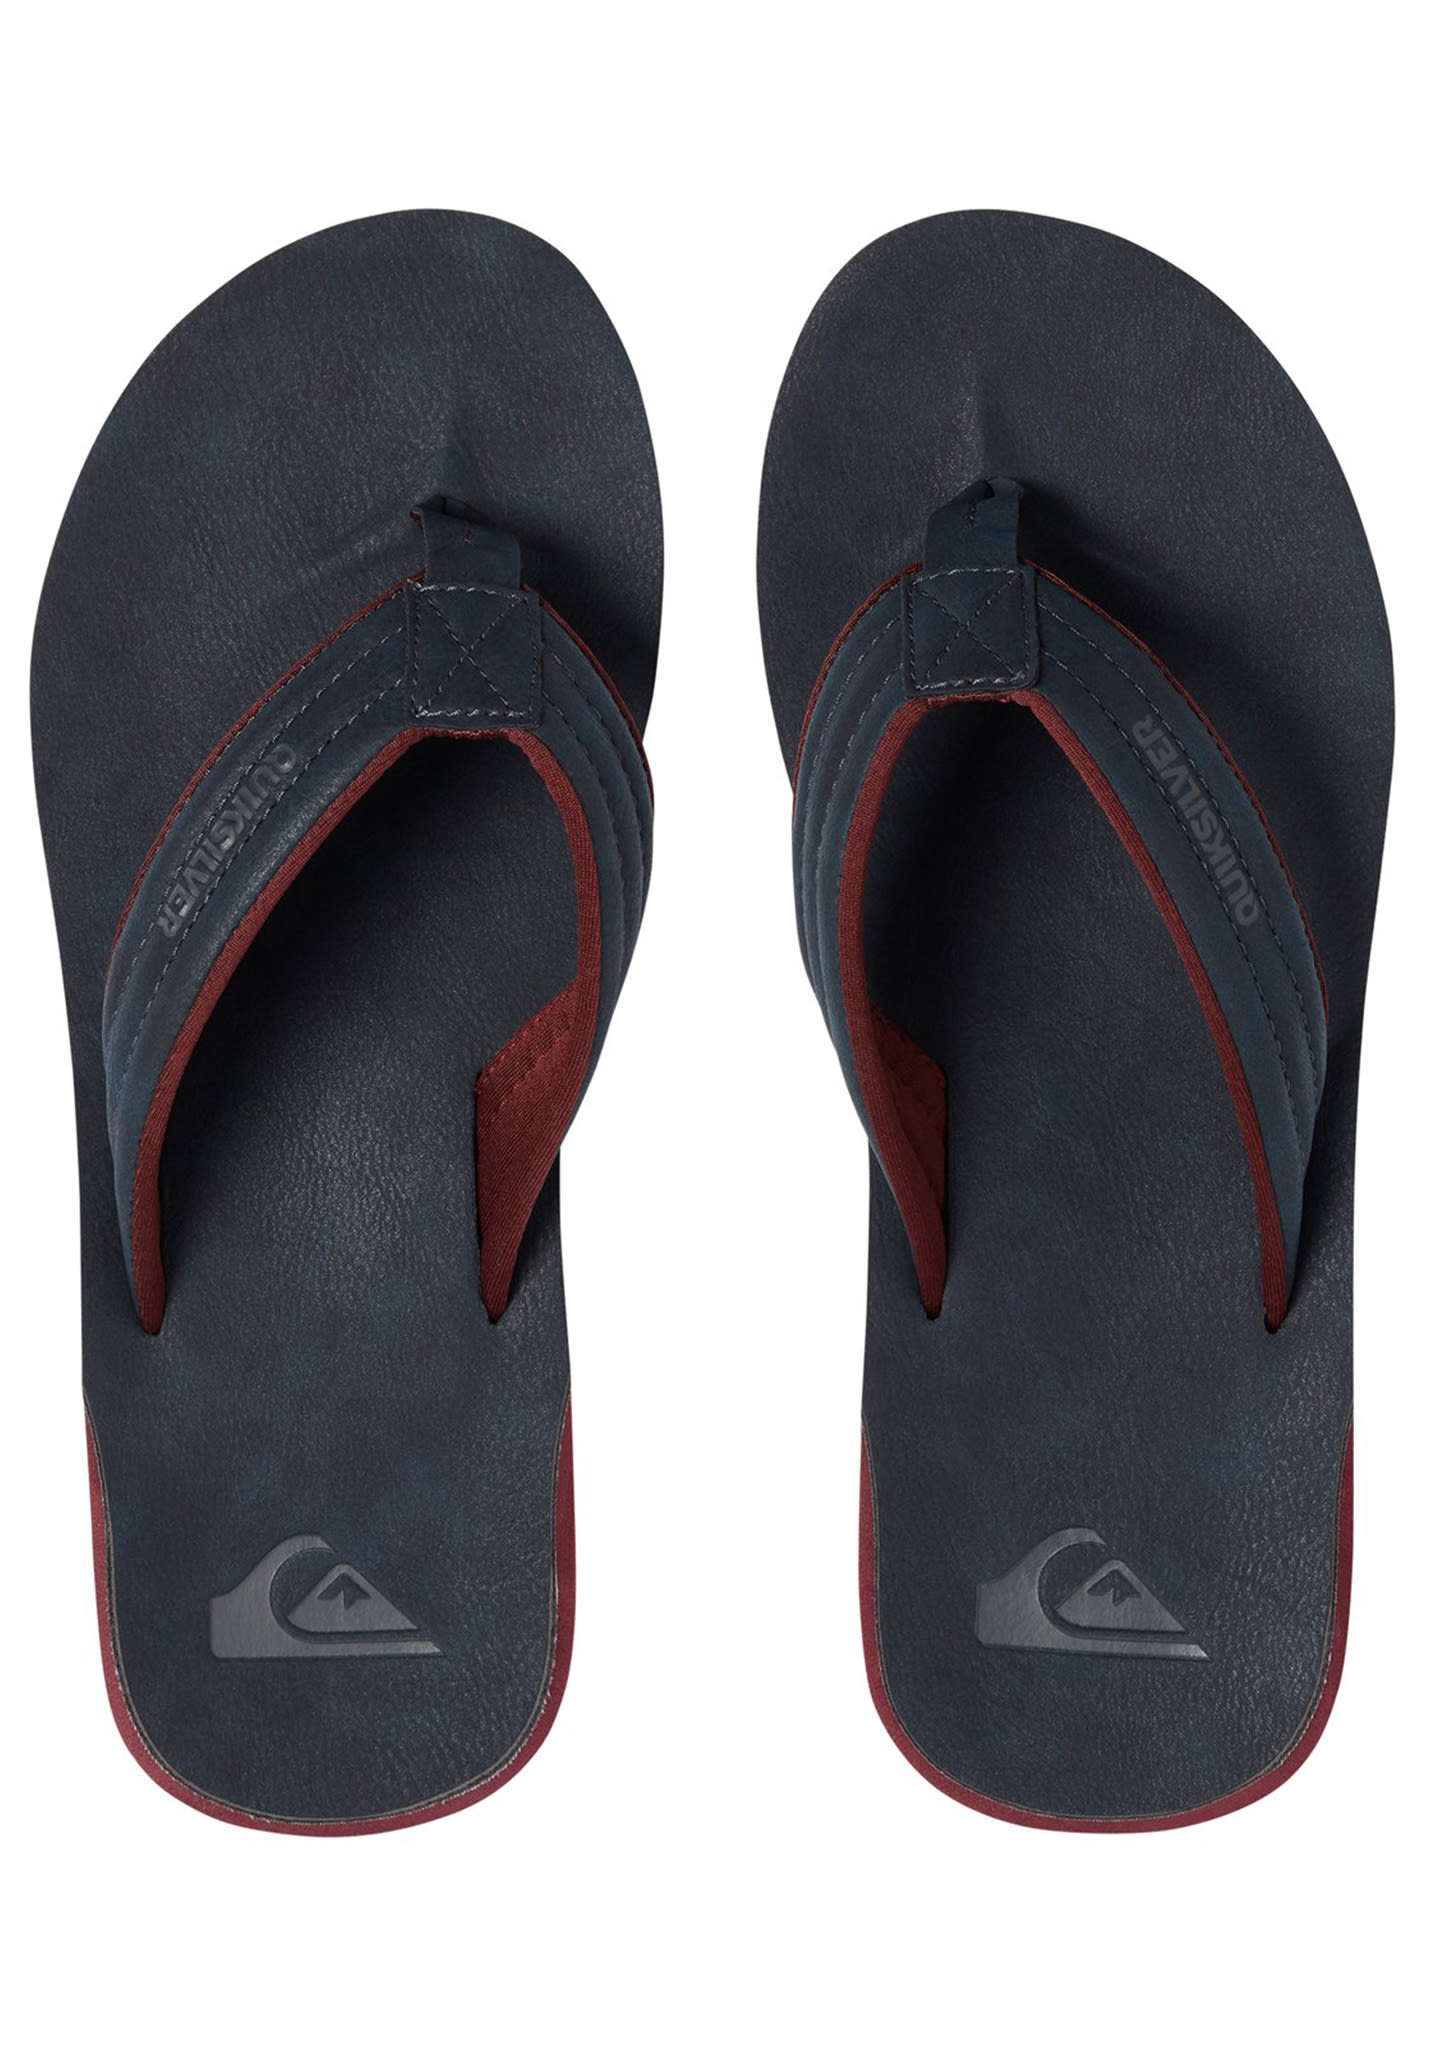 6b0df45146 Quiksilver Carver Nubuck - Sandals for Men - Blue